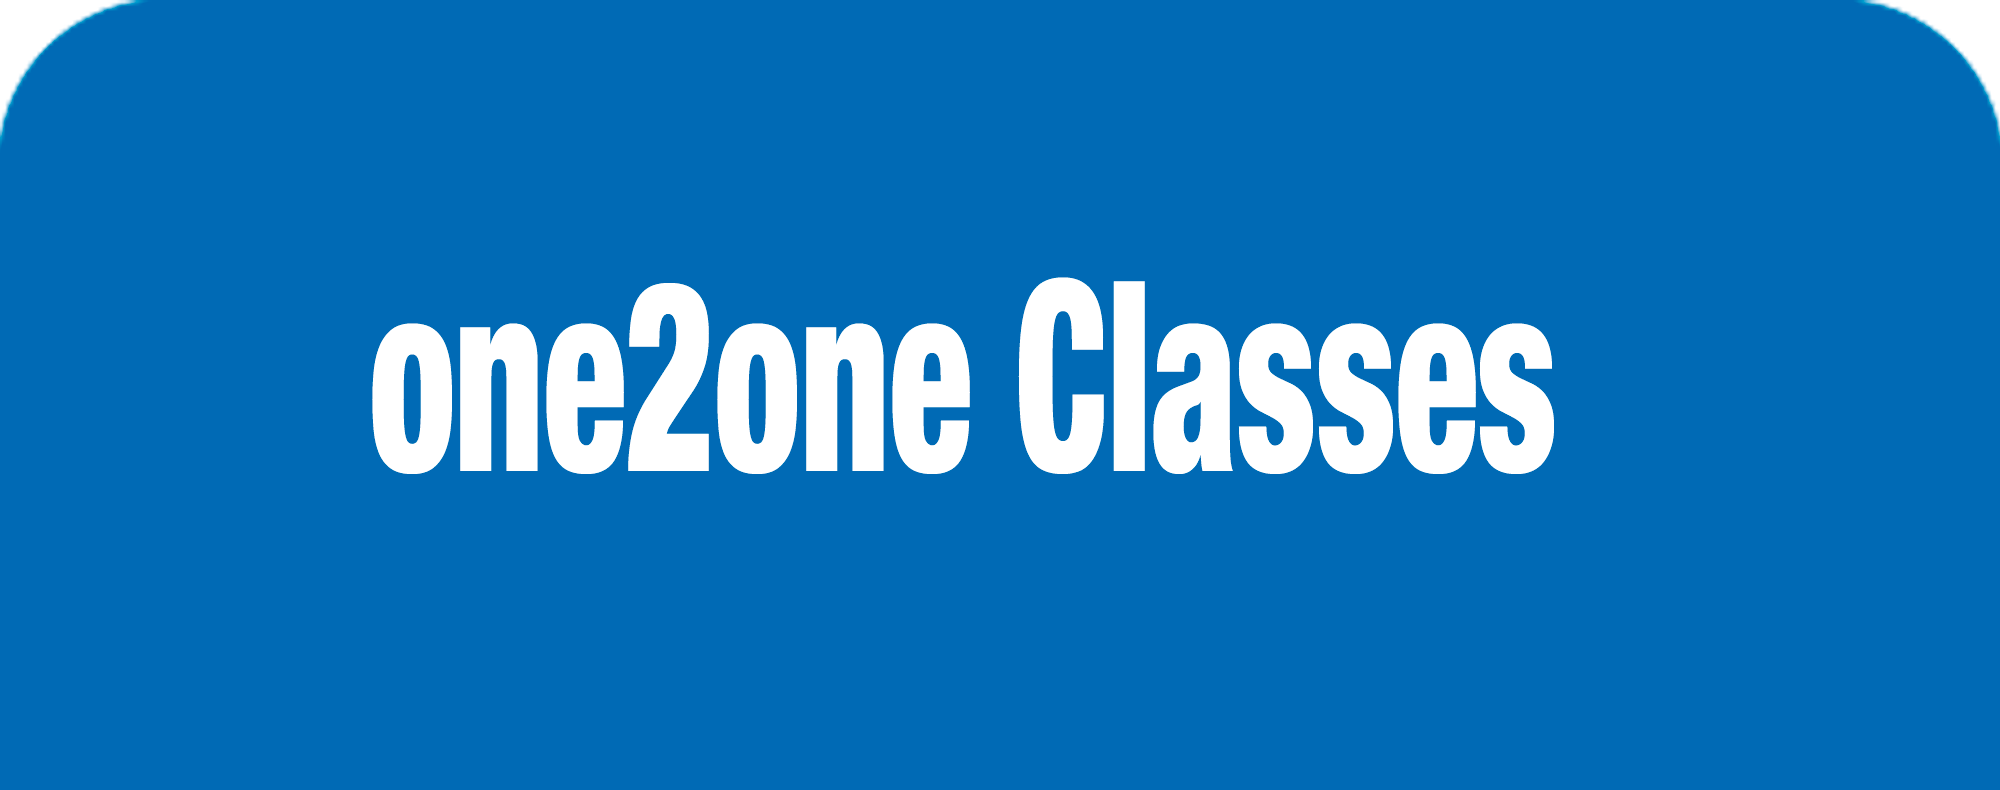 one2one Classes